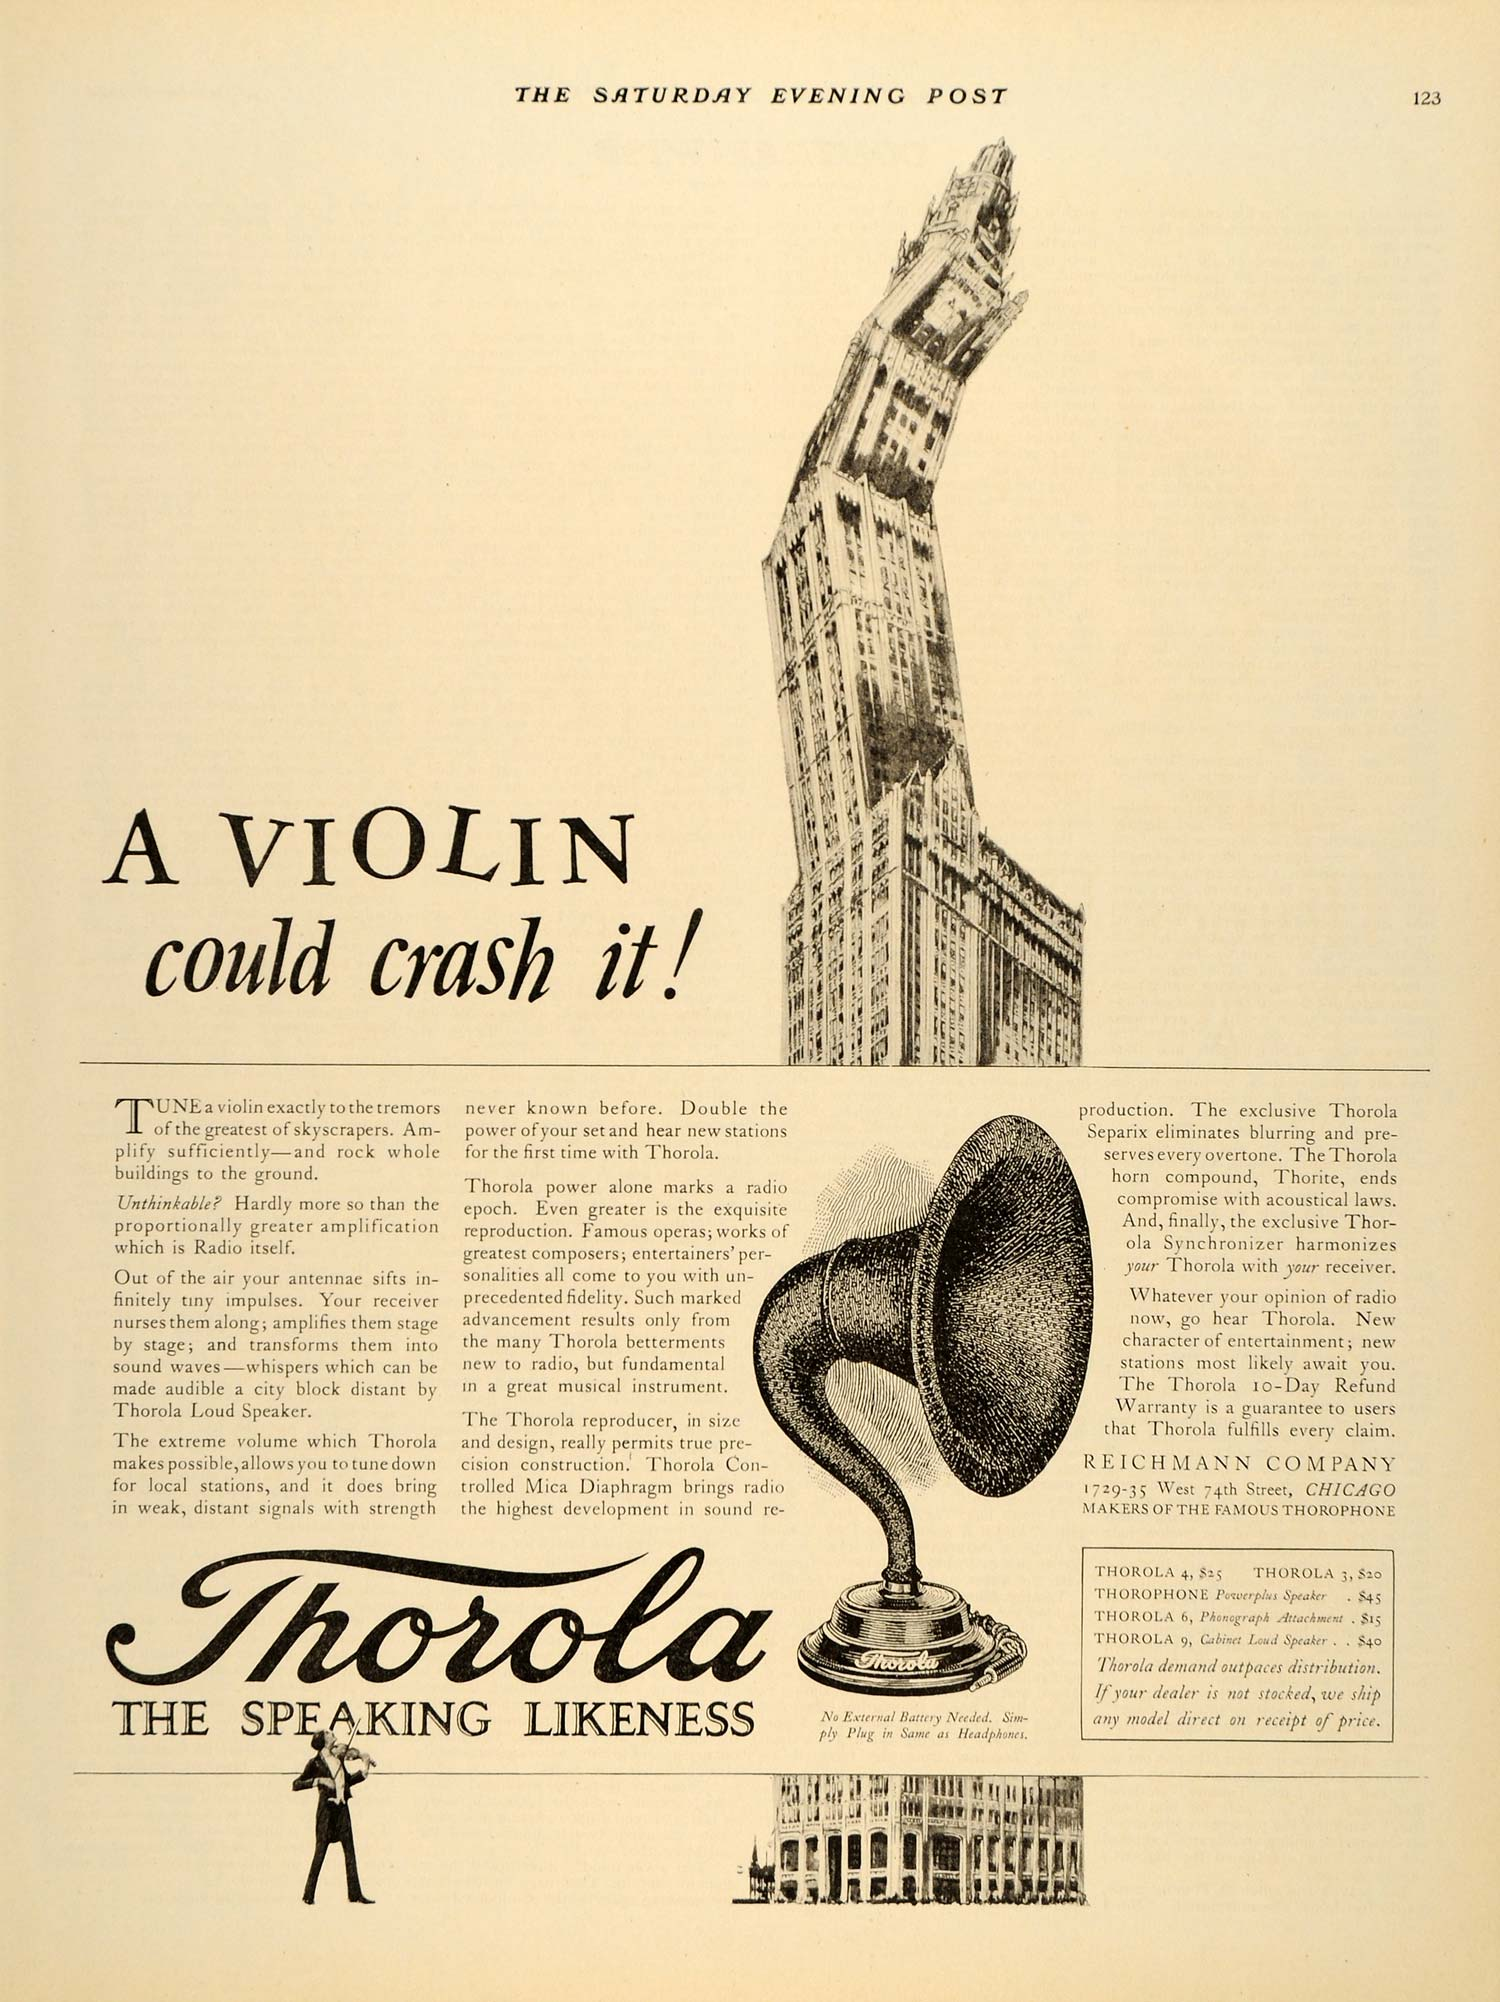 1924 Ad Reichmann Thorola Loudspeaker Horn Compound - ORIGINAL ADVERTISING SEP4